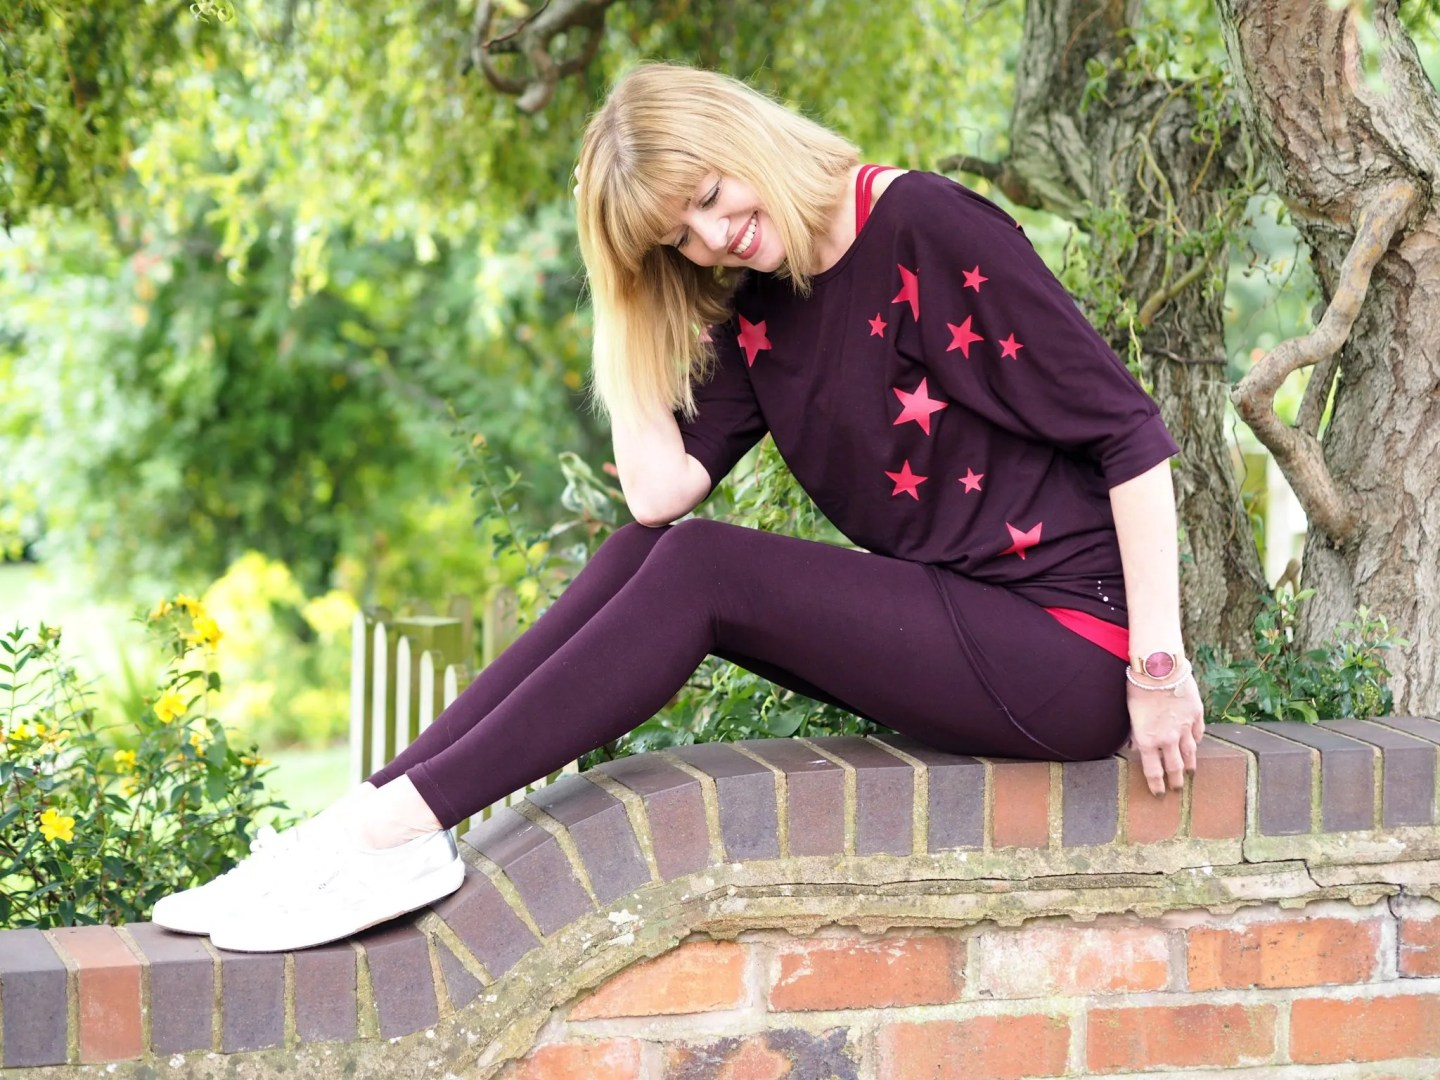 What-Lizzy-loves-bamboo-yoga-clothes-leggings-stars-top